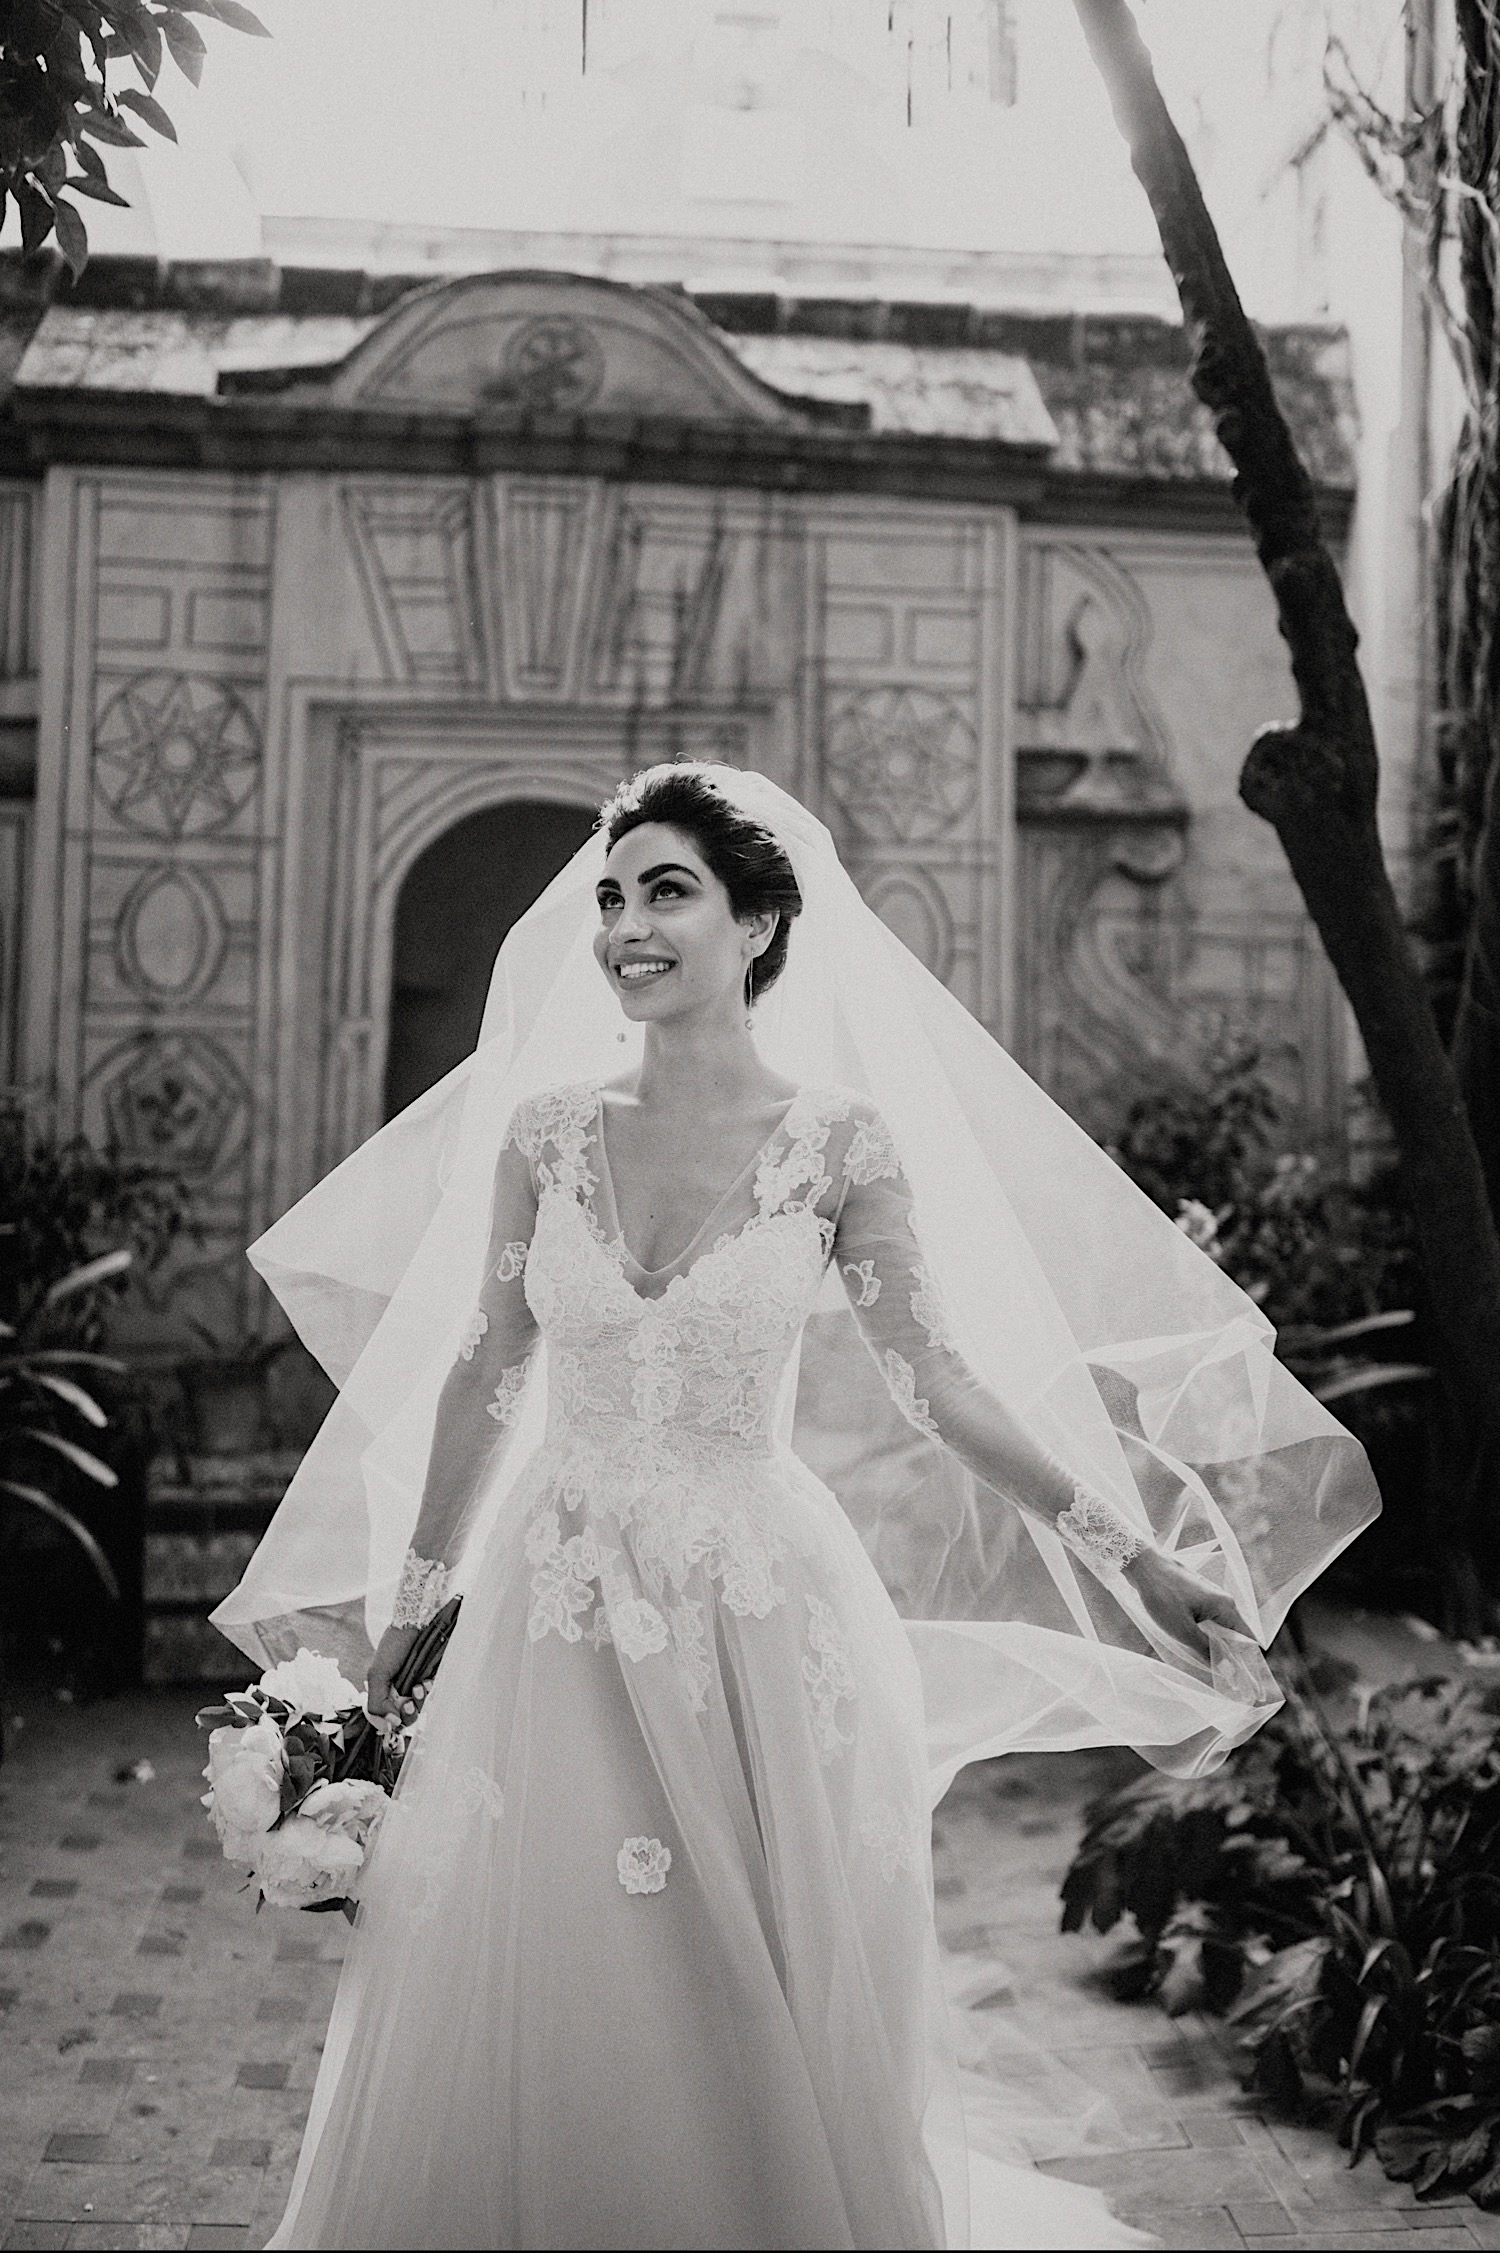 weddingphotographersevilla-persianwedding-ernestovillalba-0012.JPG